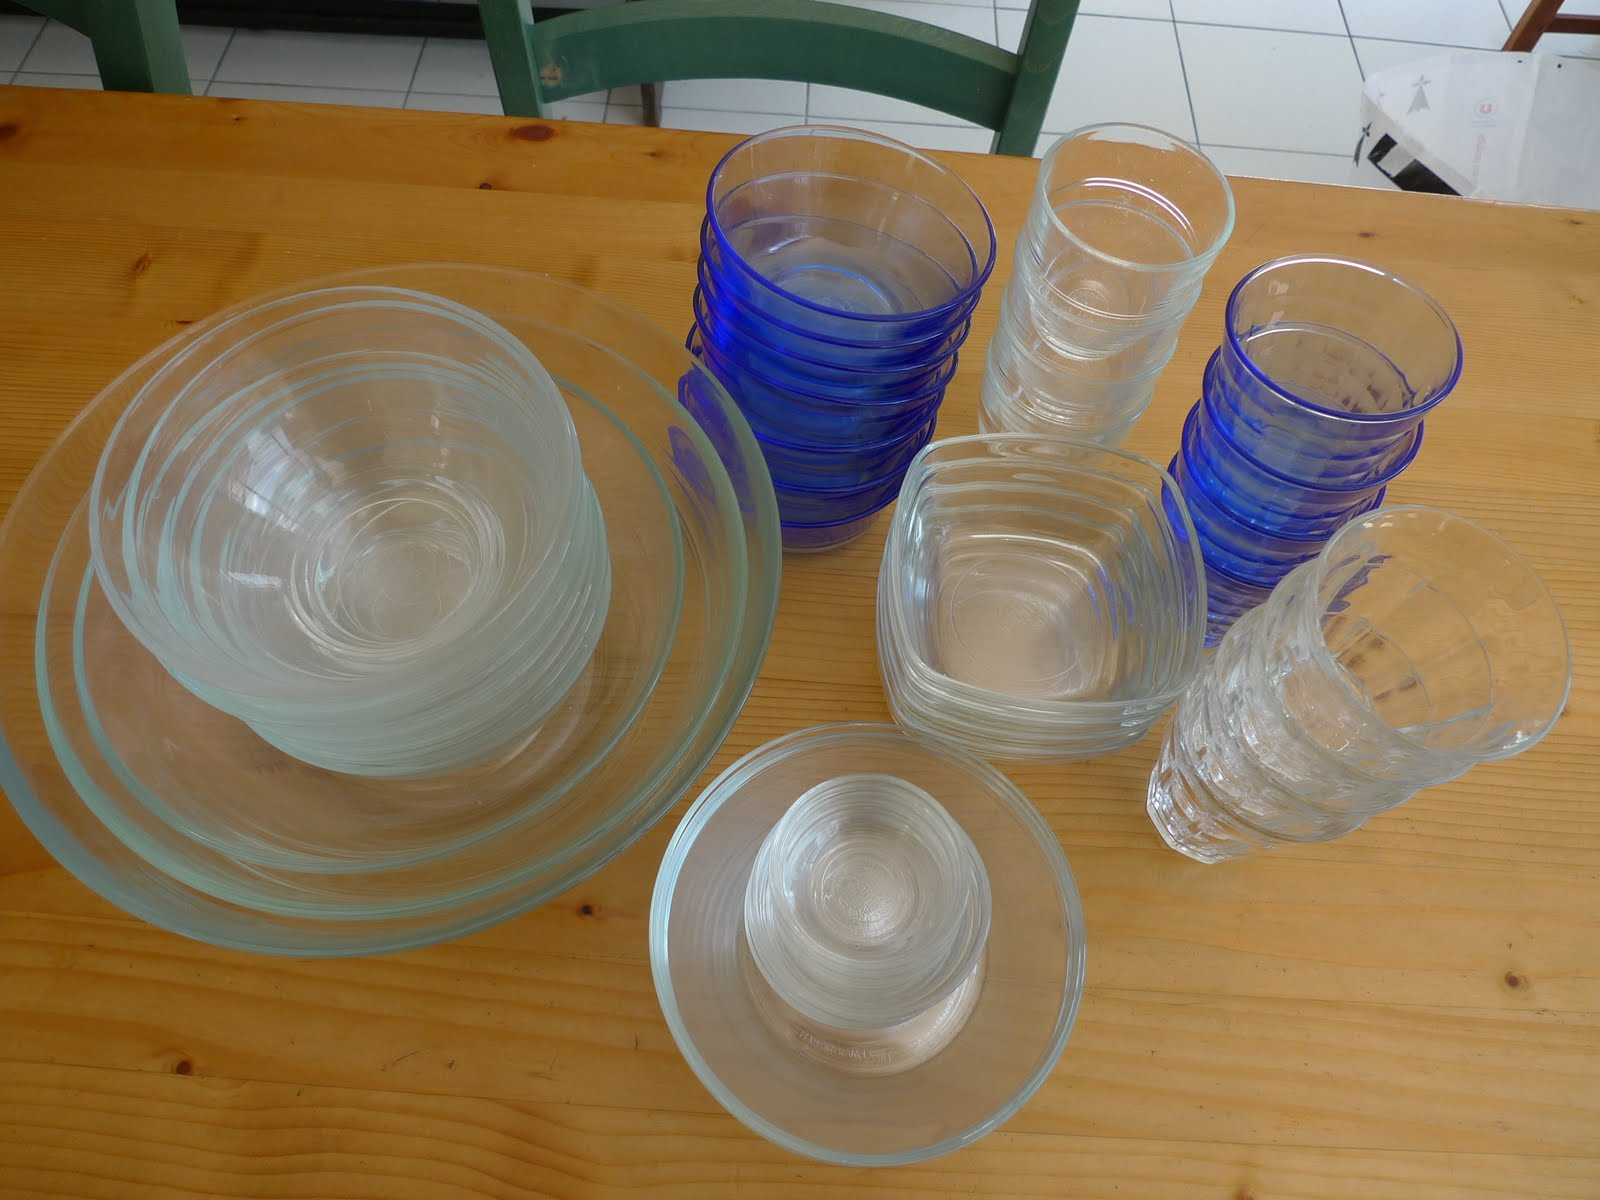 Duralex Glass Bowls